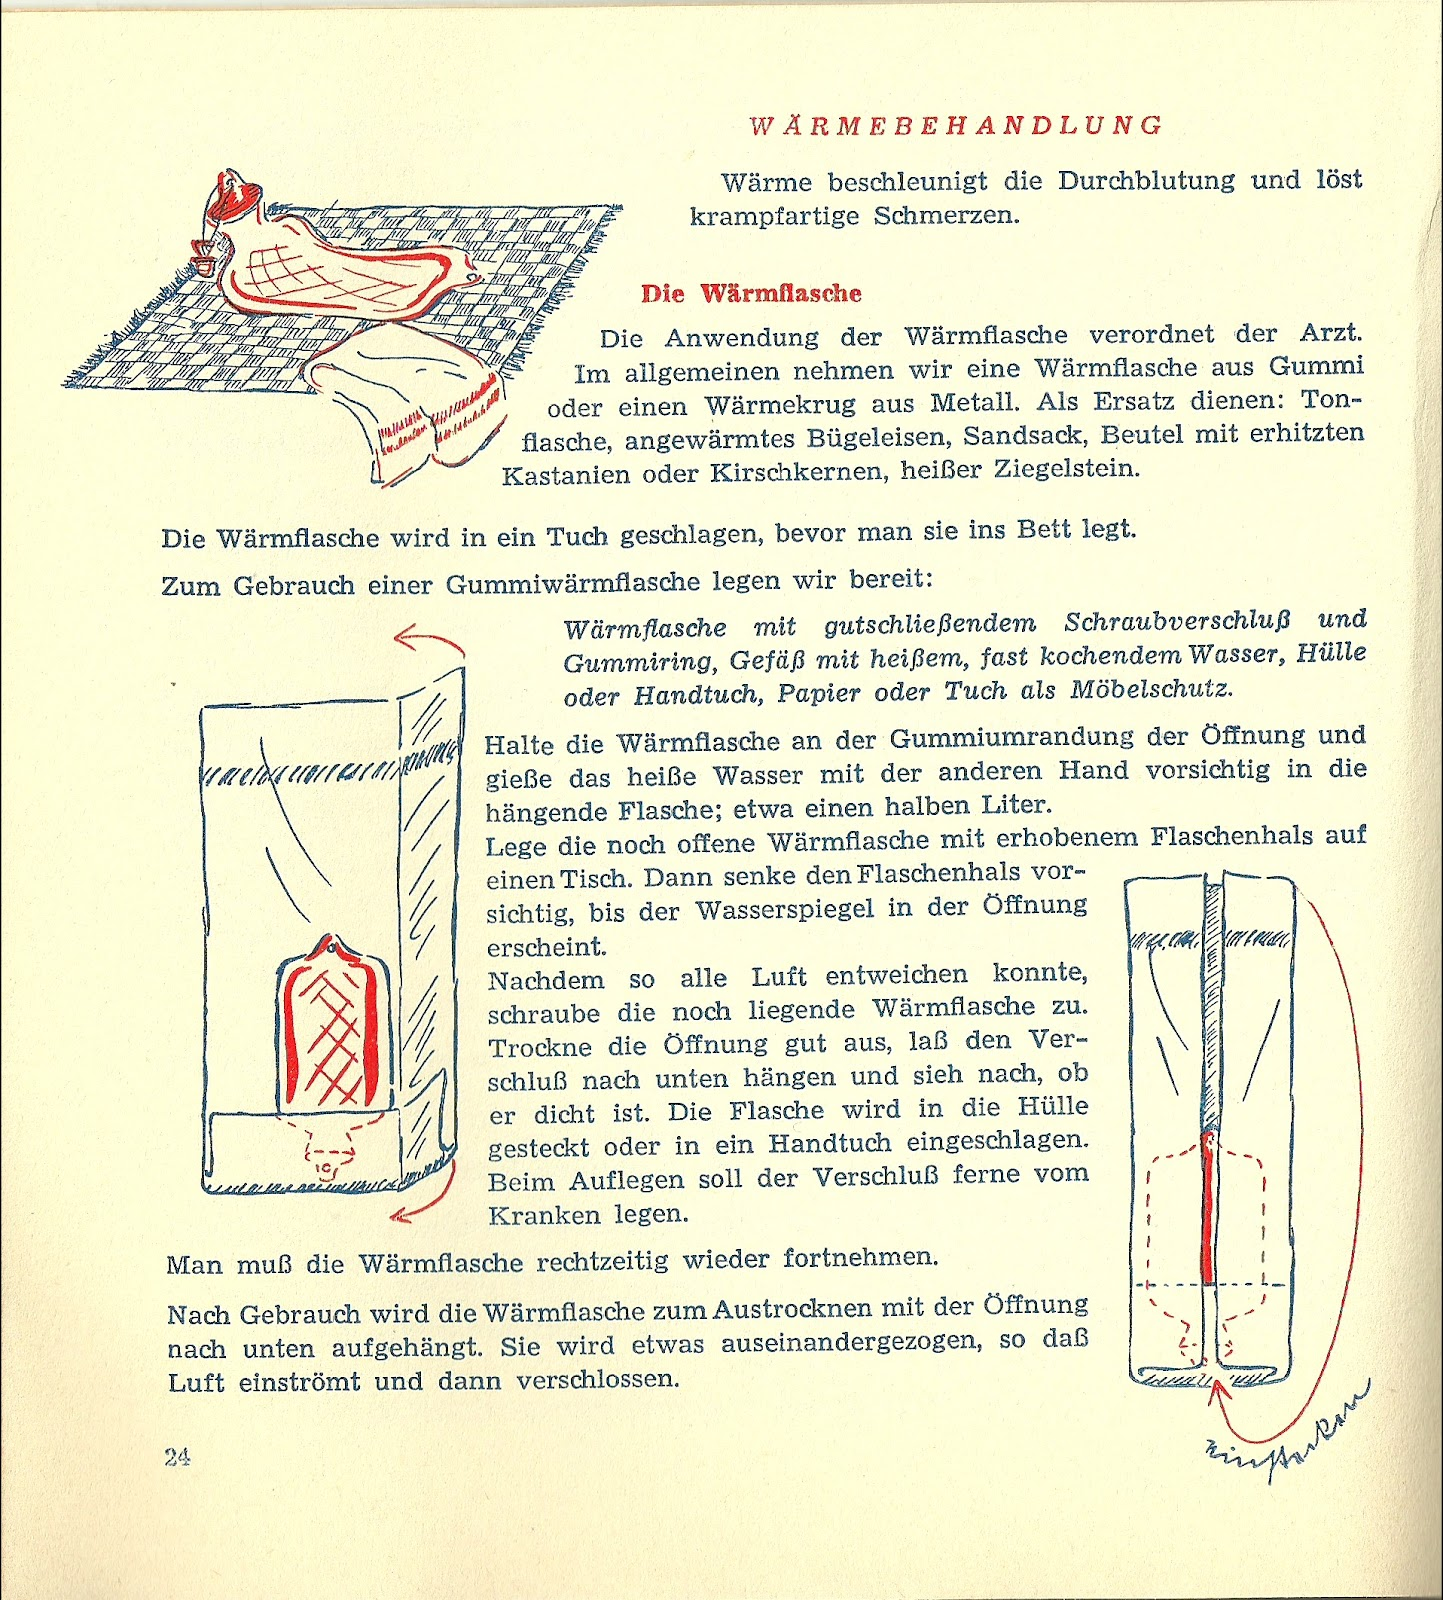 The Hausfrau Journal: Red Cross nursing tips from 1955